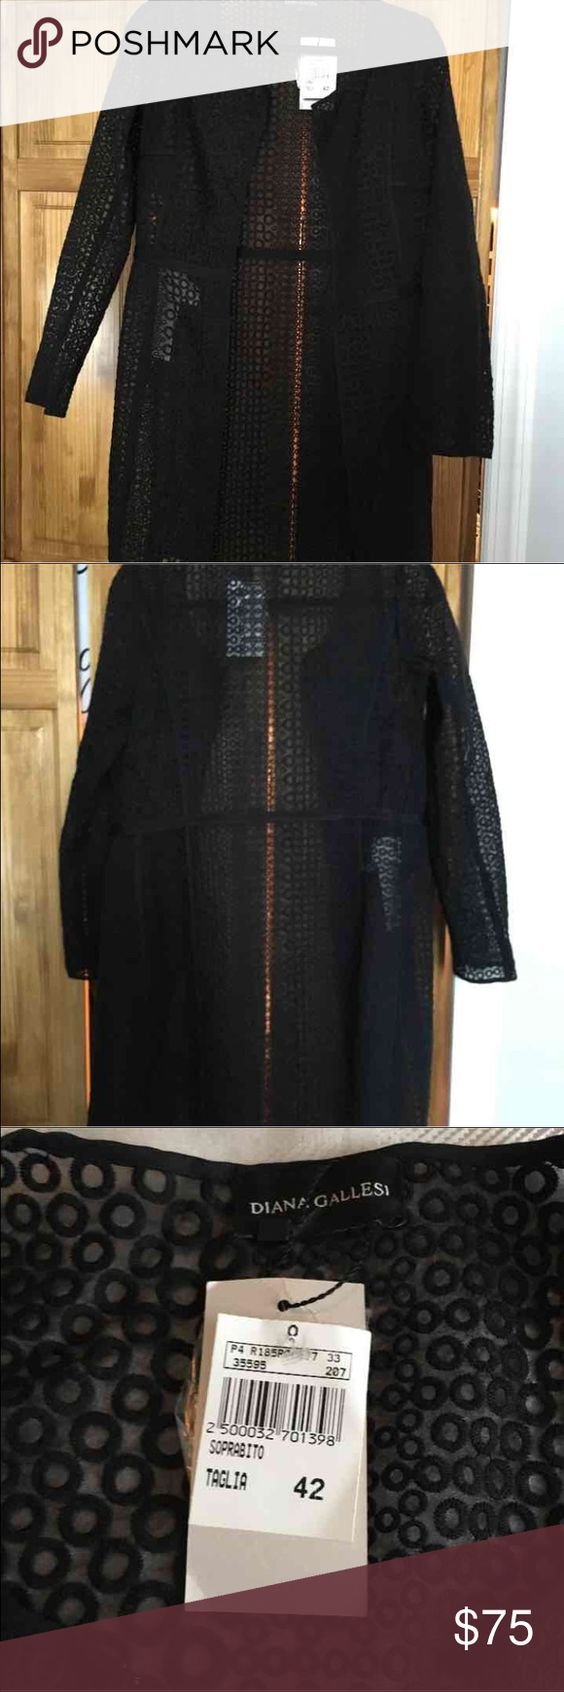 Black long overcoat Beautiful black long sleeve  overcoat by the  Italian designer Diana Gallesi.  You can wear this overcoat open or you can close it with the hooks. The Italian size is a 42.  On the tag inside the jacket it states the US size is a 6. Jackets & Coats Blazers